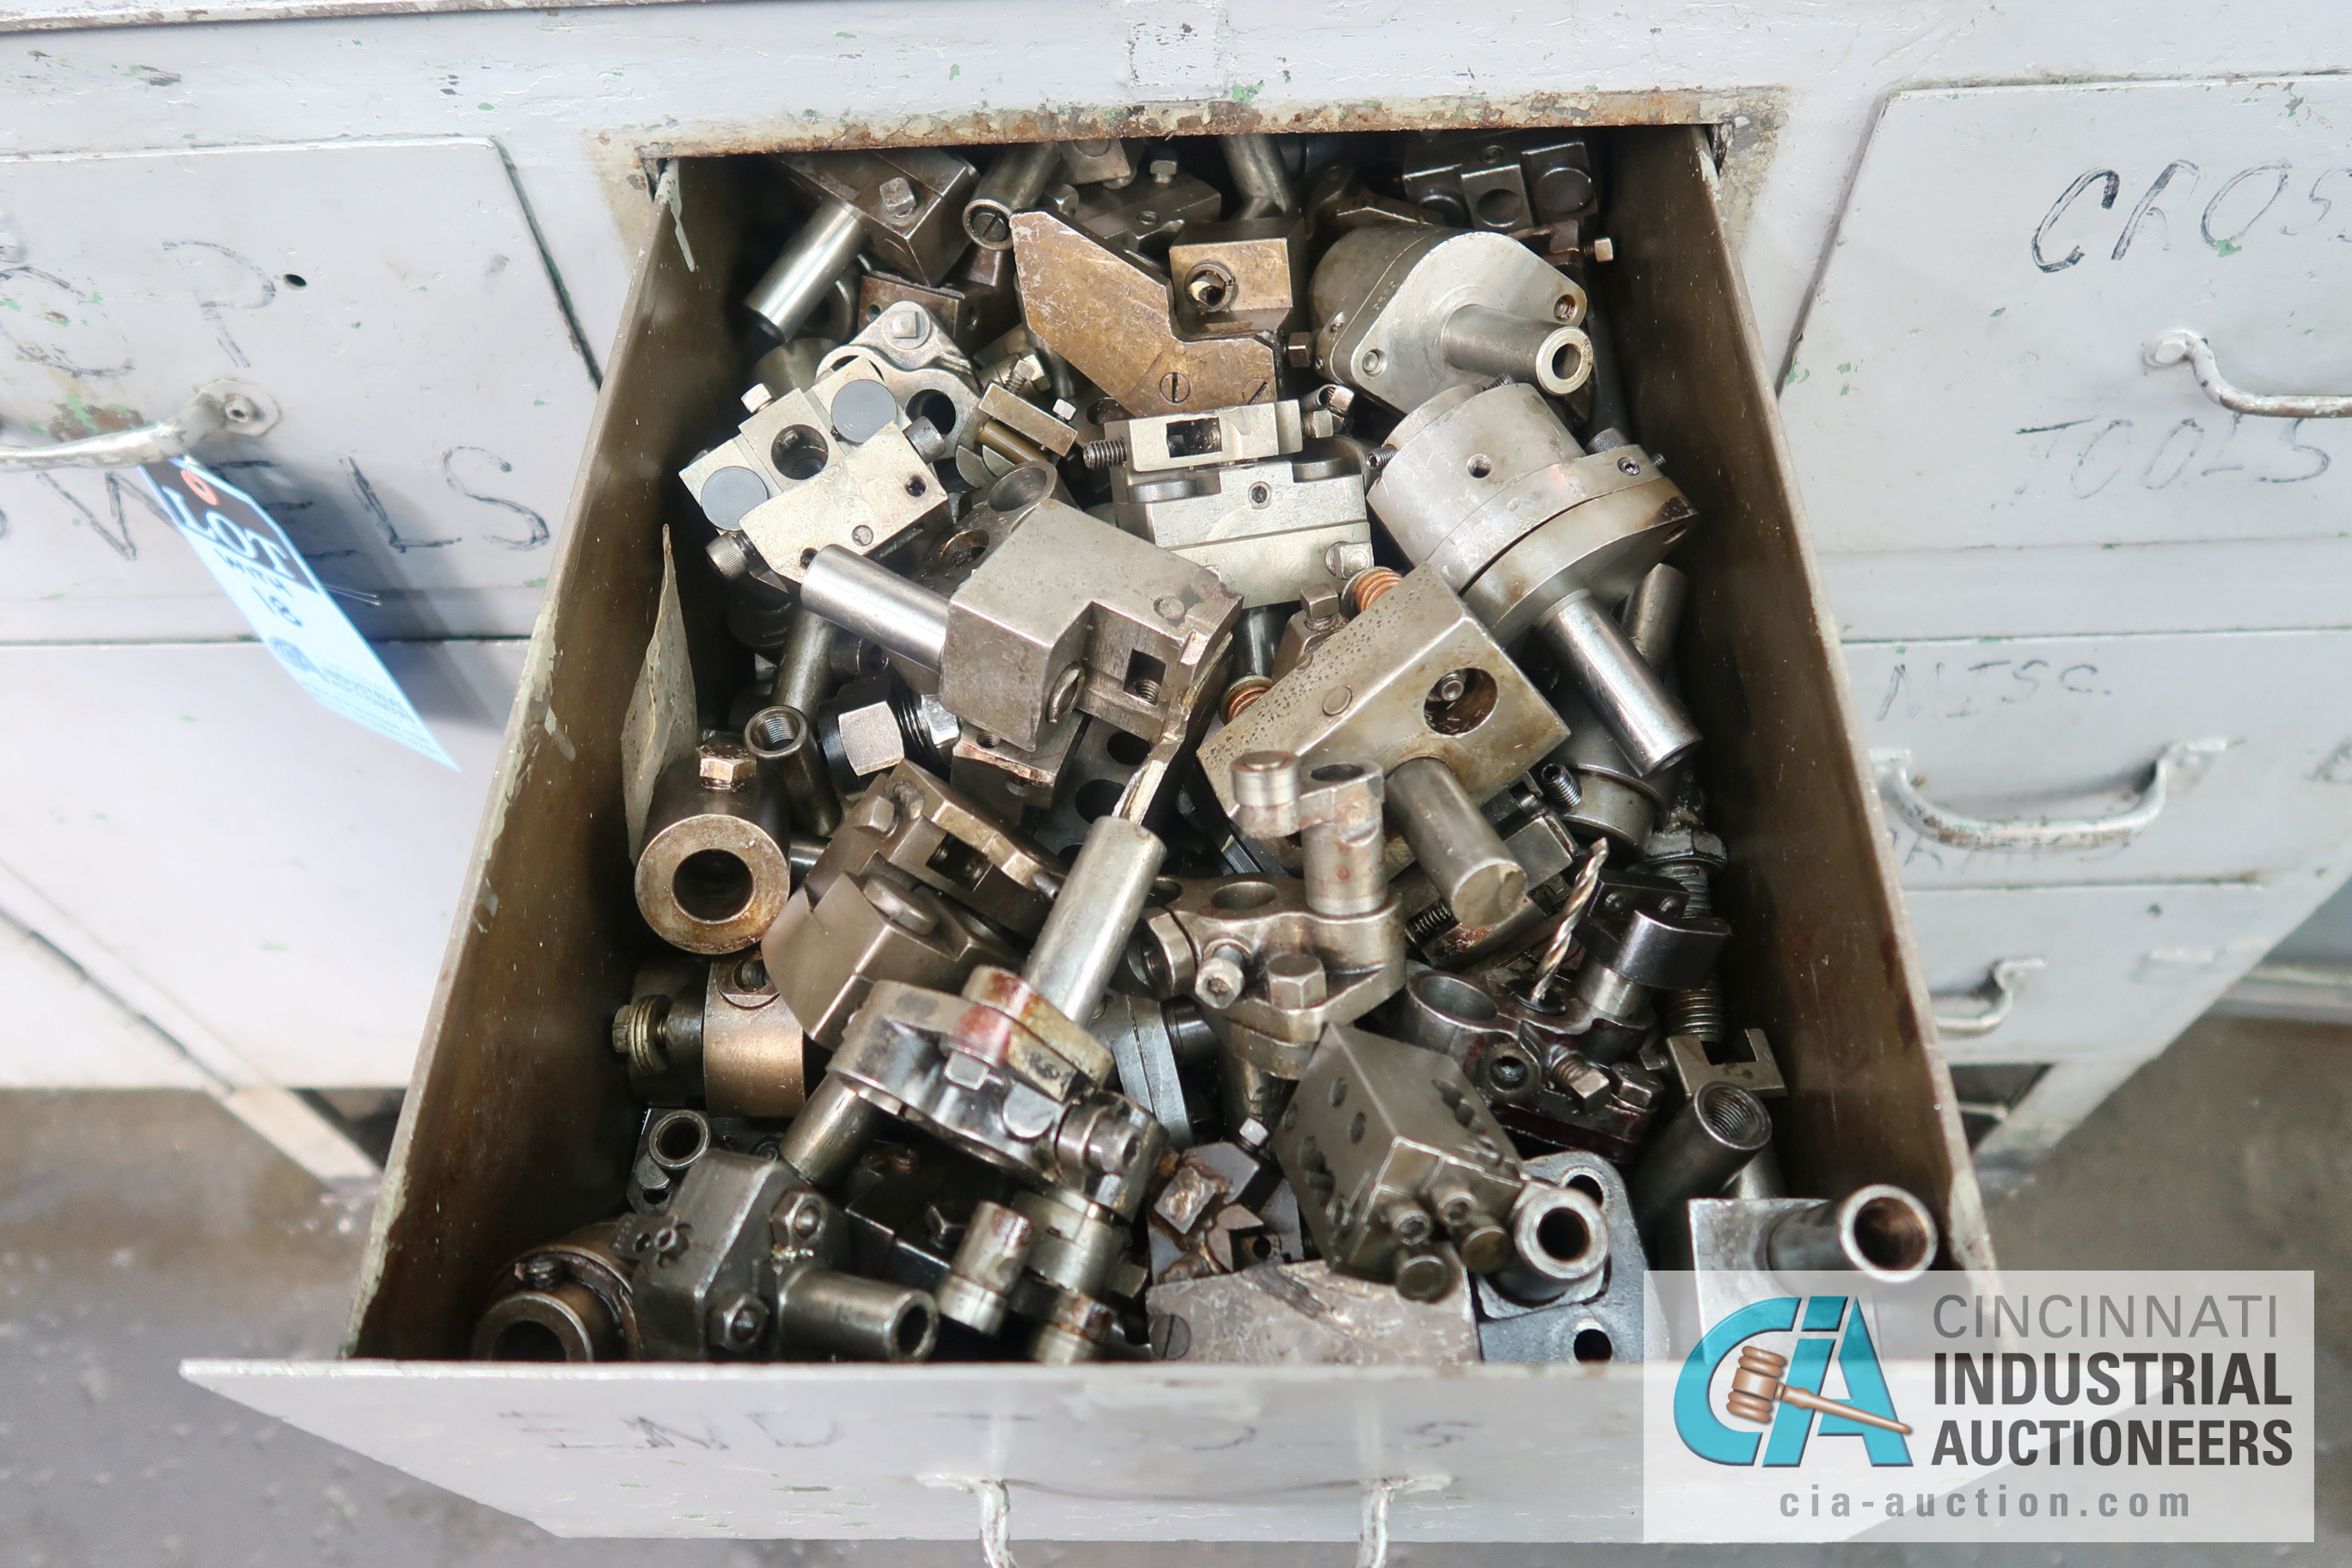 (LOT) LARGE ASSORTMENT MISCELLANEOUS DAVENPORT TOOLING, ATTACHMENTS, GEARS, CAMS AND OTHER RELATED - Image 20 of 21